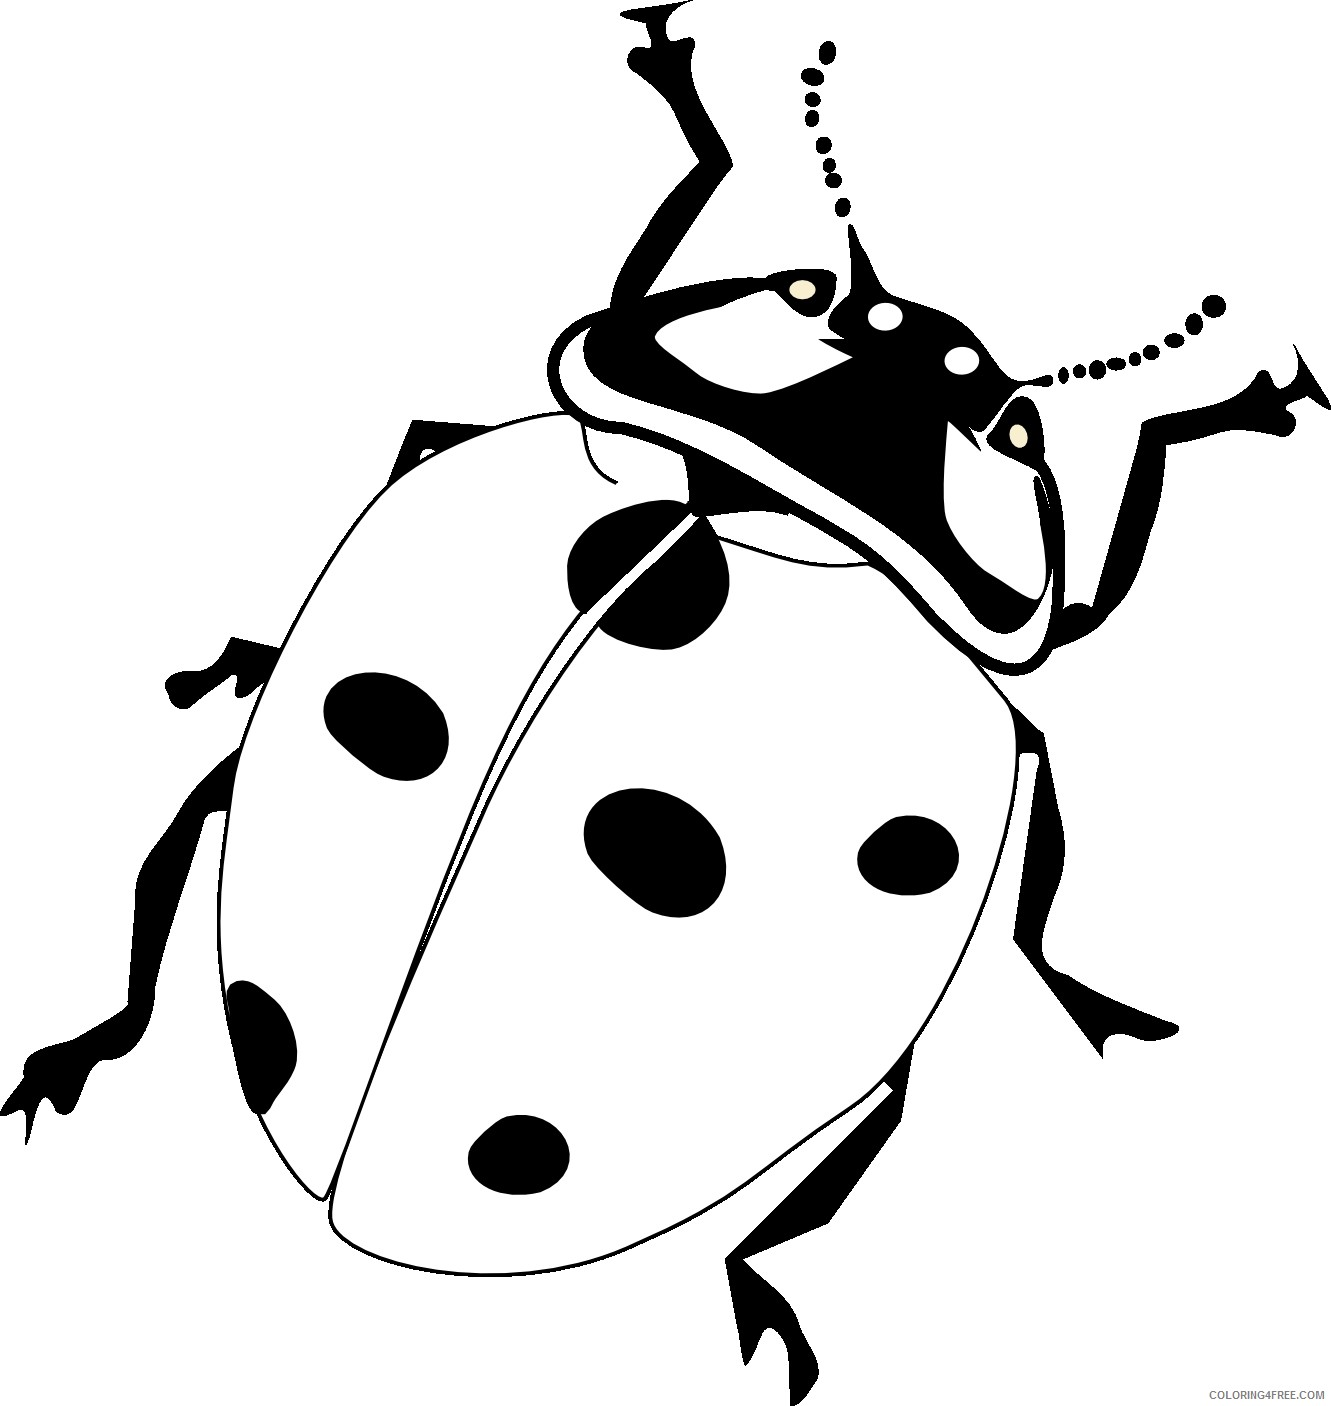 realistic ladybug coloring pages Coloring4free